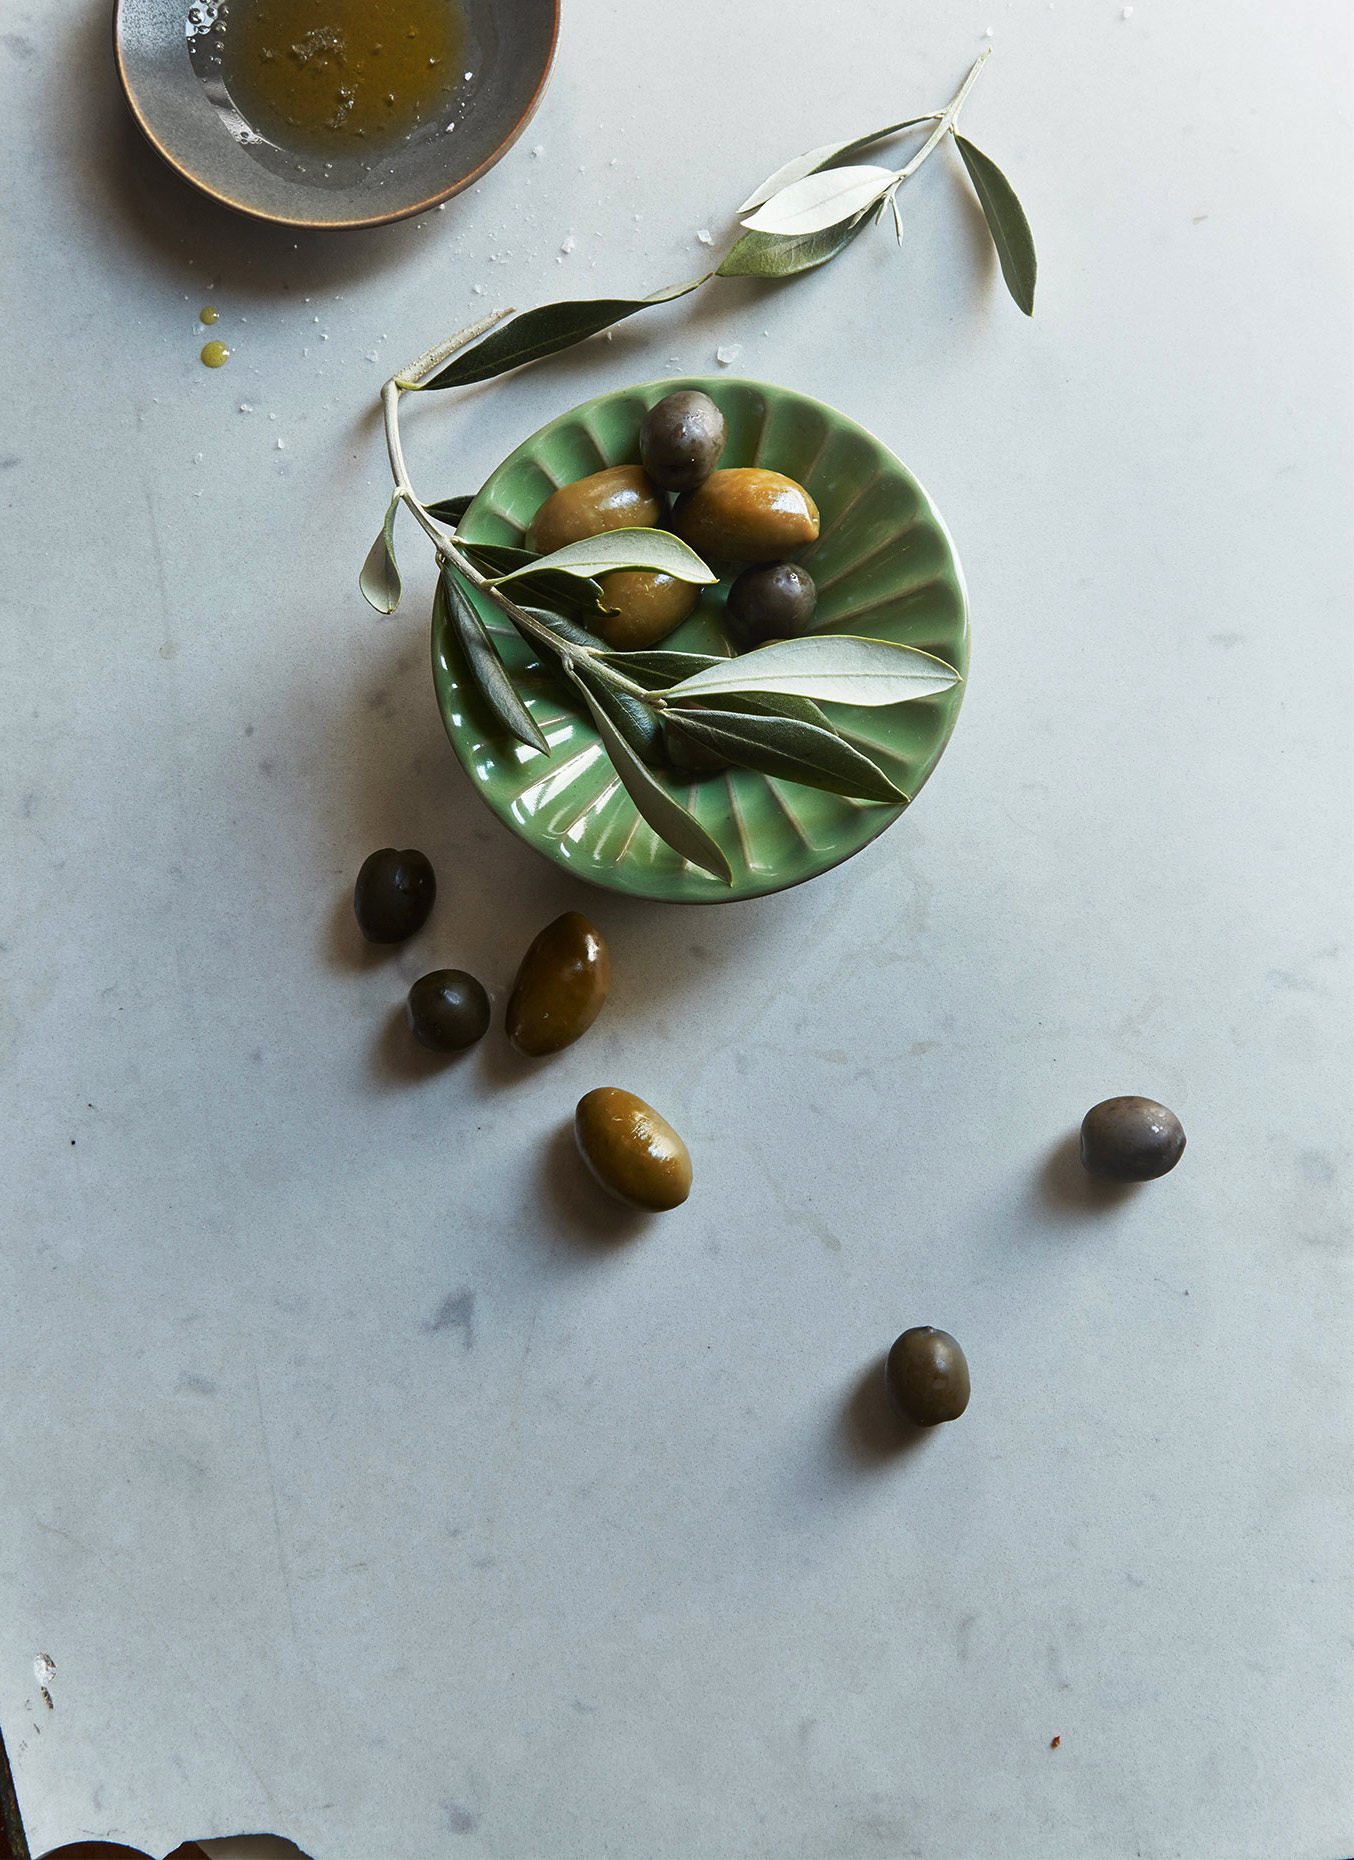 Olives_Test_8_2017_3669_V2_Web